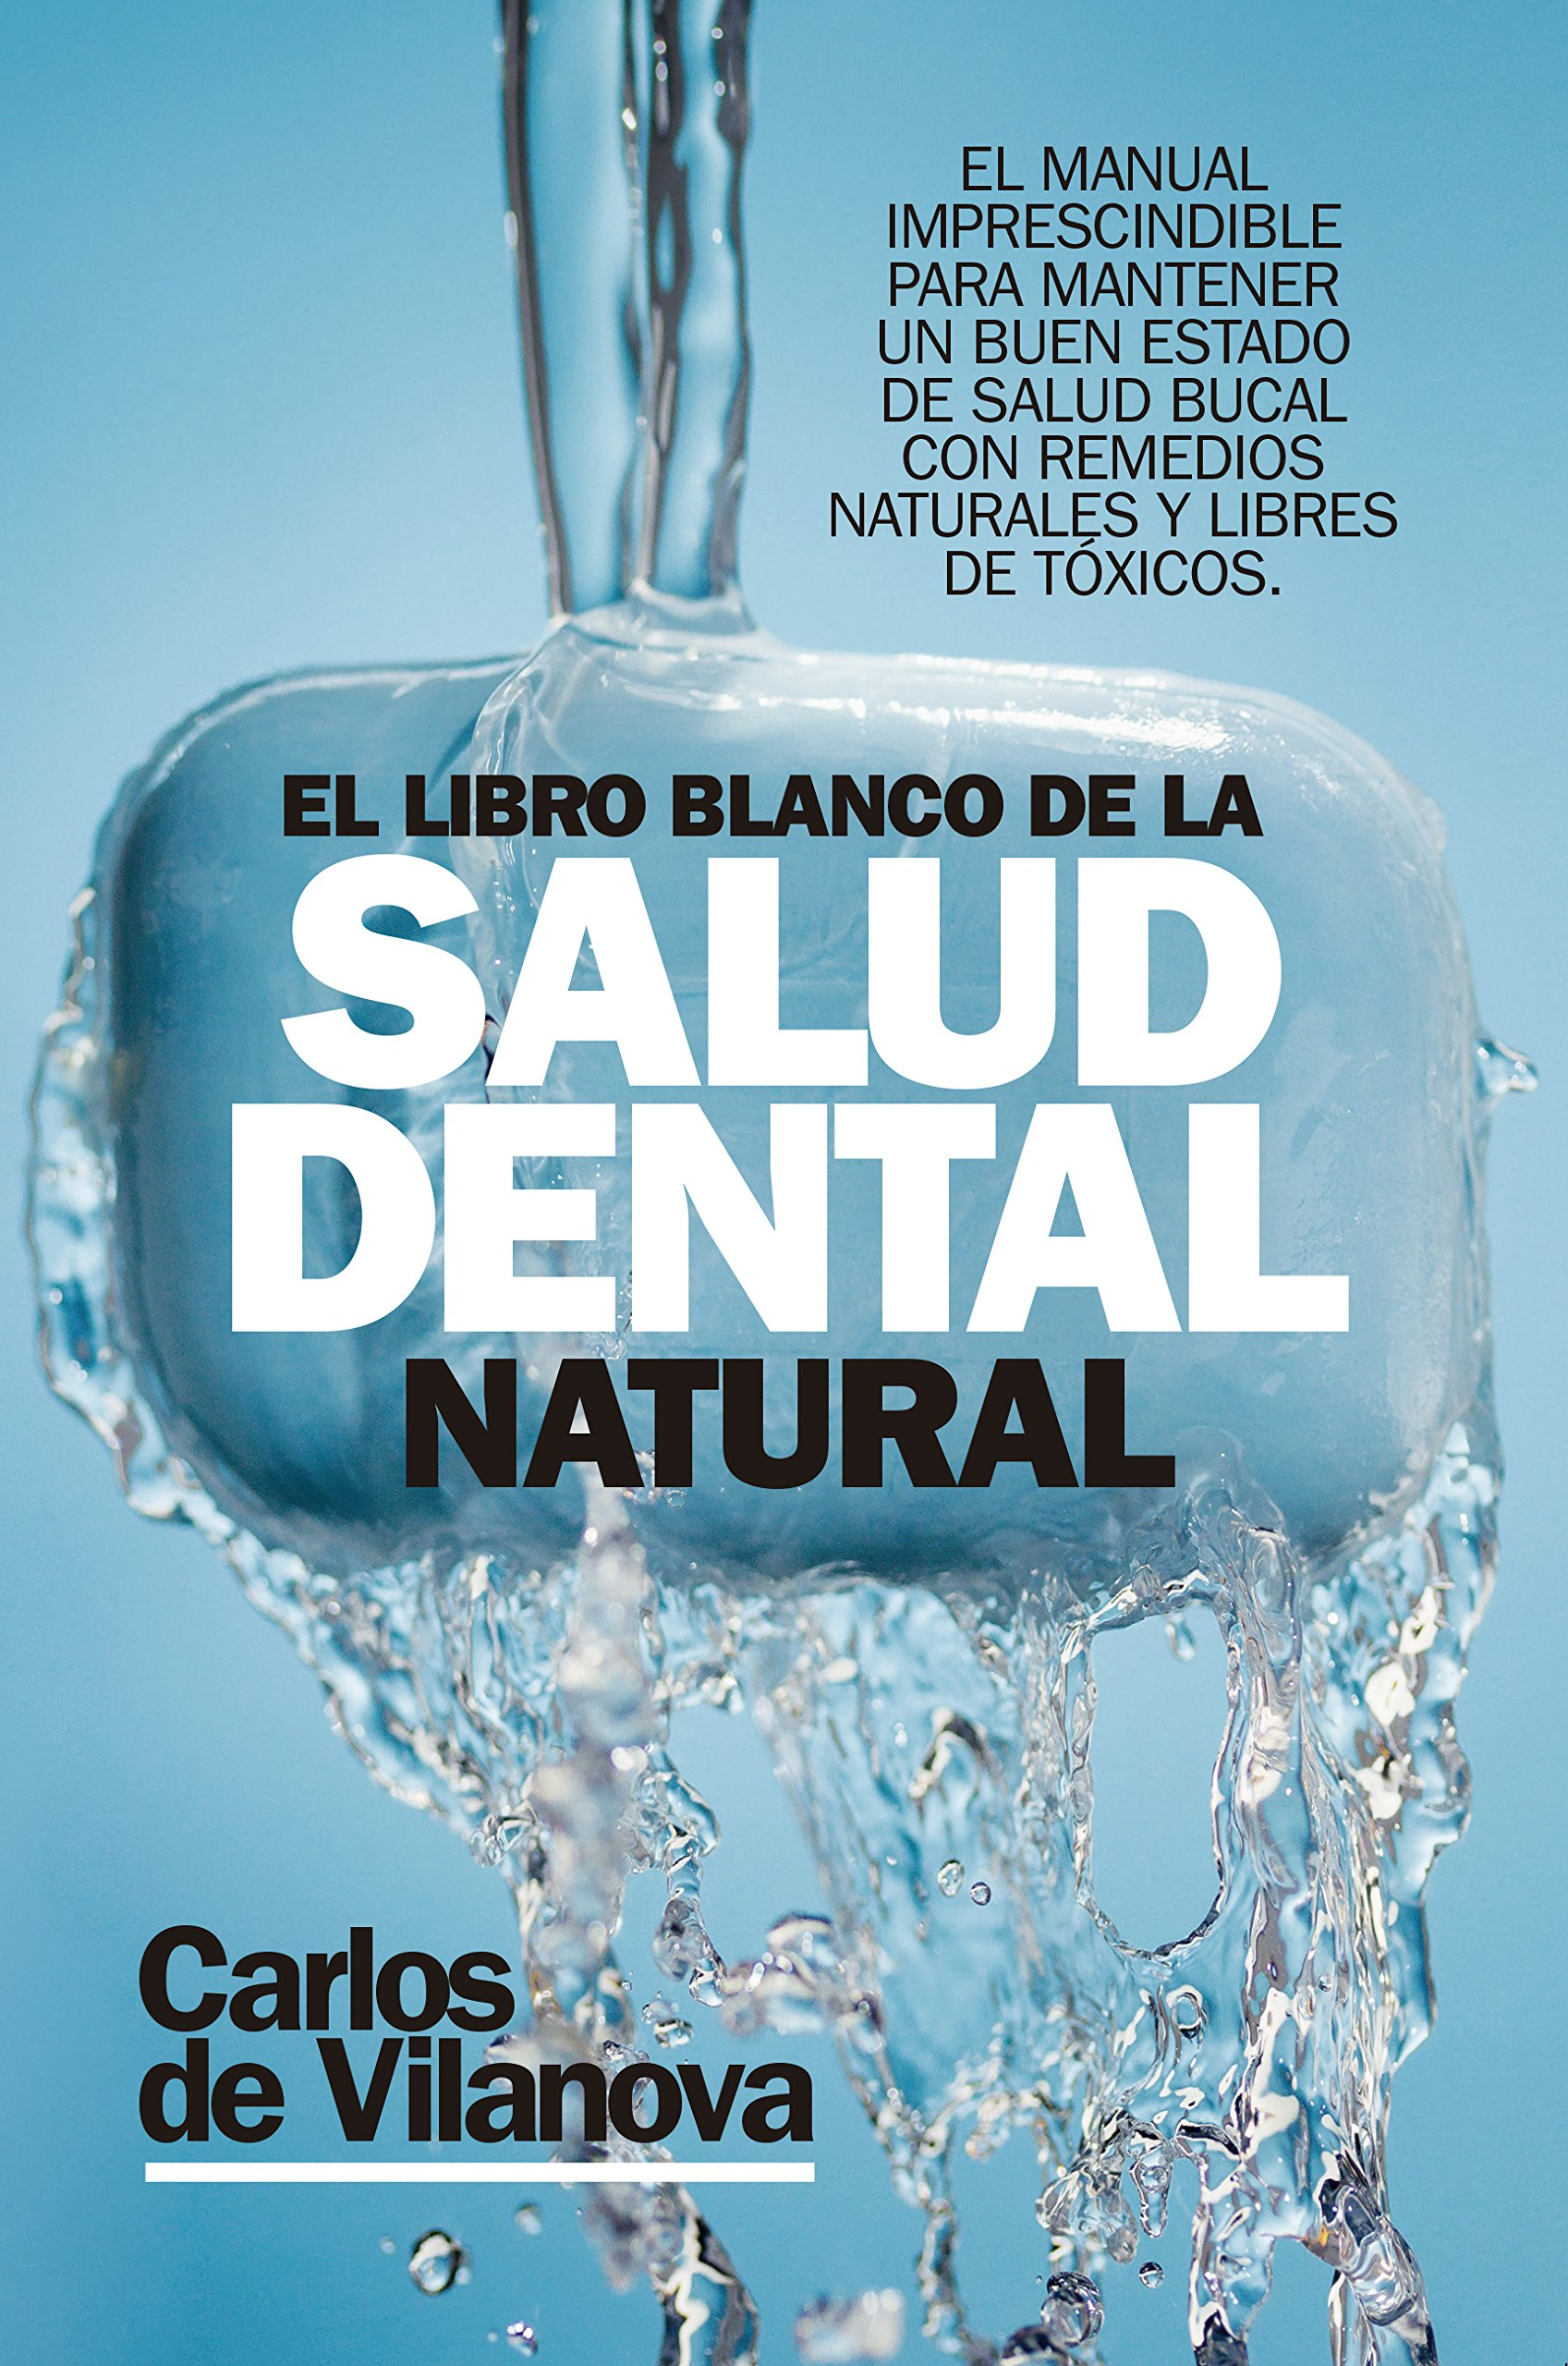 El libro blanco de la salud dental natural: Amazon.es: Carlos de Vilanova: Libros